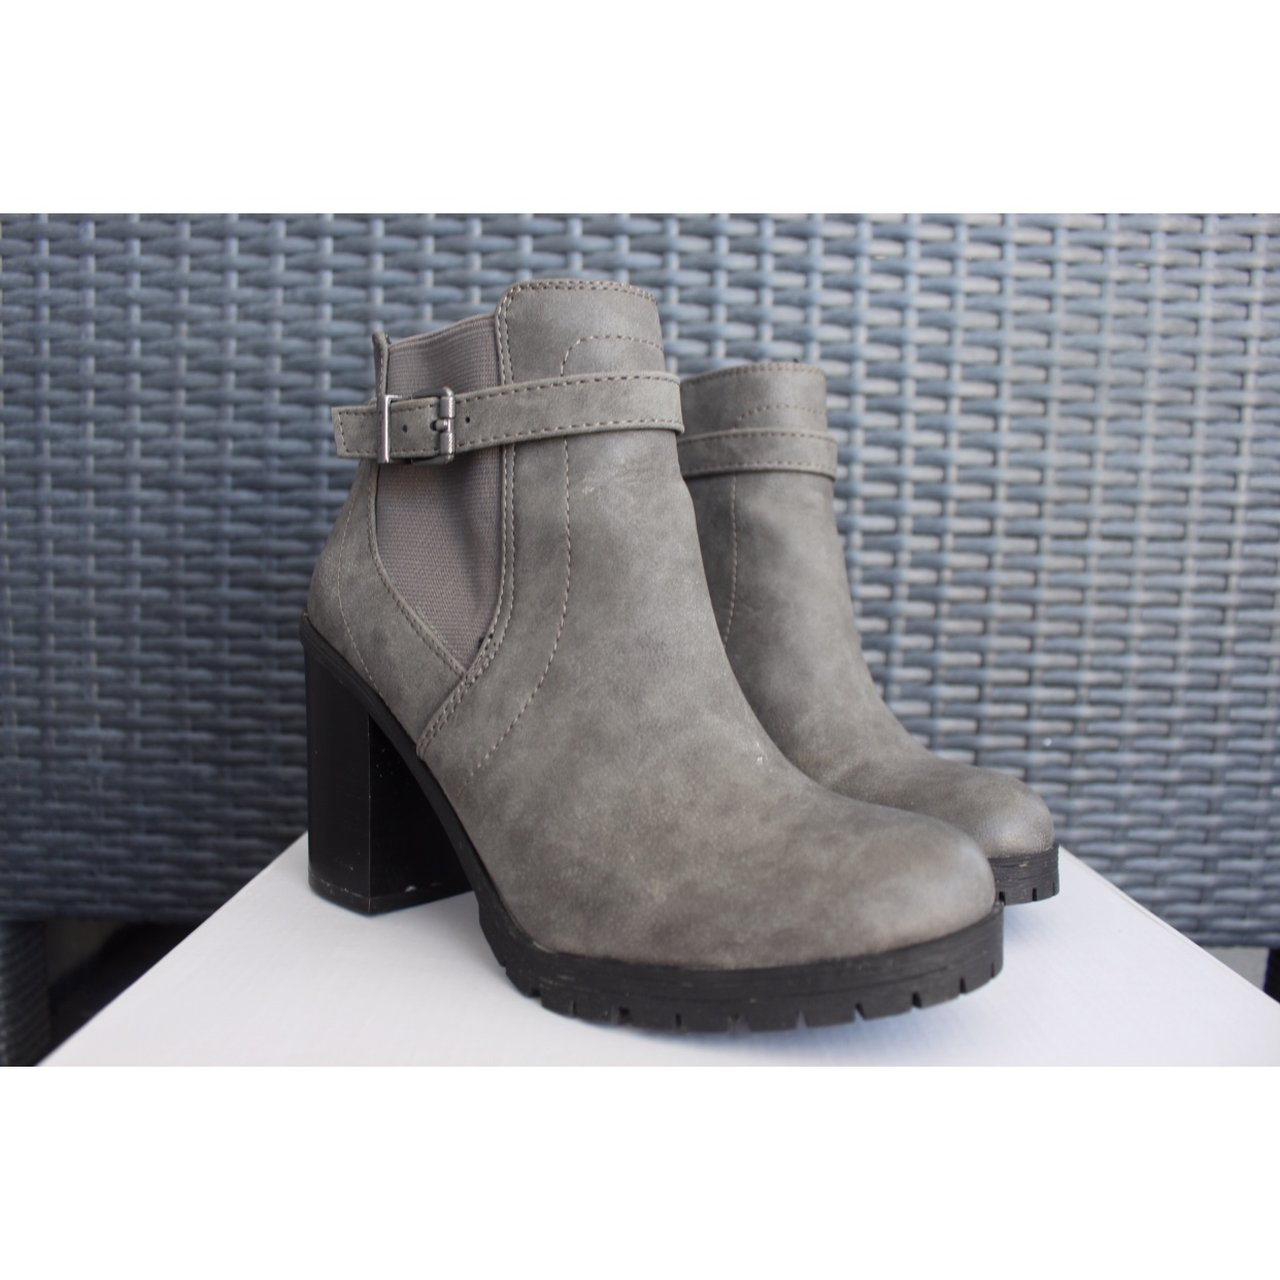 320e95f39 Grey Circus Sam Edelman Booties worn twice